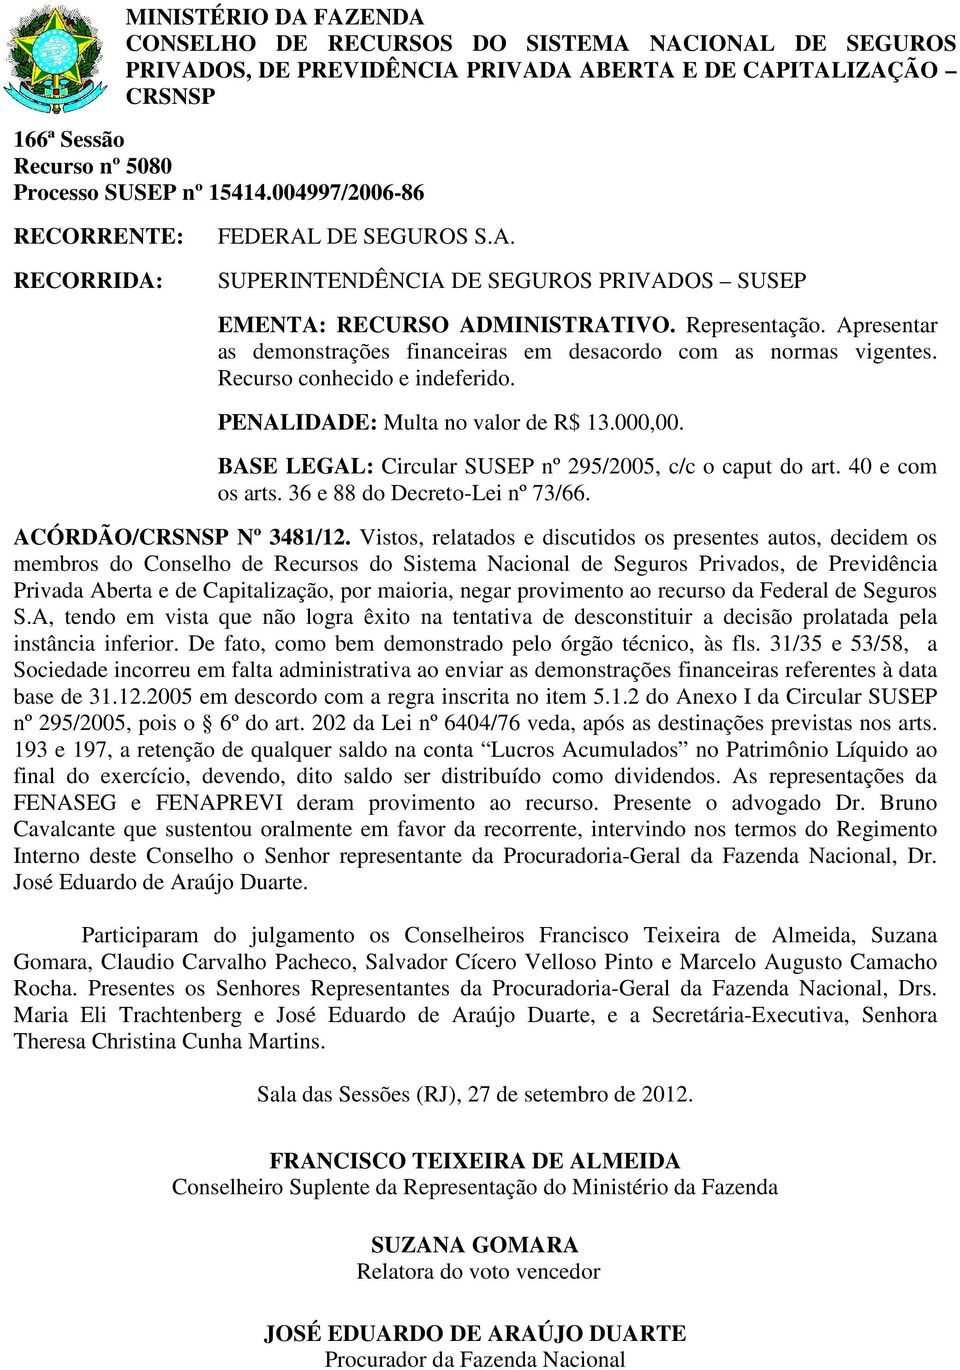 BASE LEGAL: Circular SUSEP nº 295/2005, c/c o caput do art. 40 e com os arts. 36 e 88 do Decreto-Lei nº 73/66. ACÓRDÃO/ Nº 3481/12.